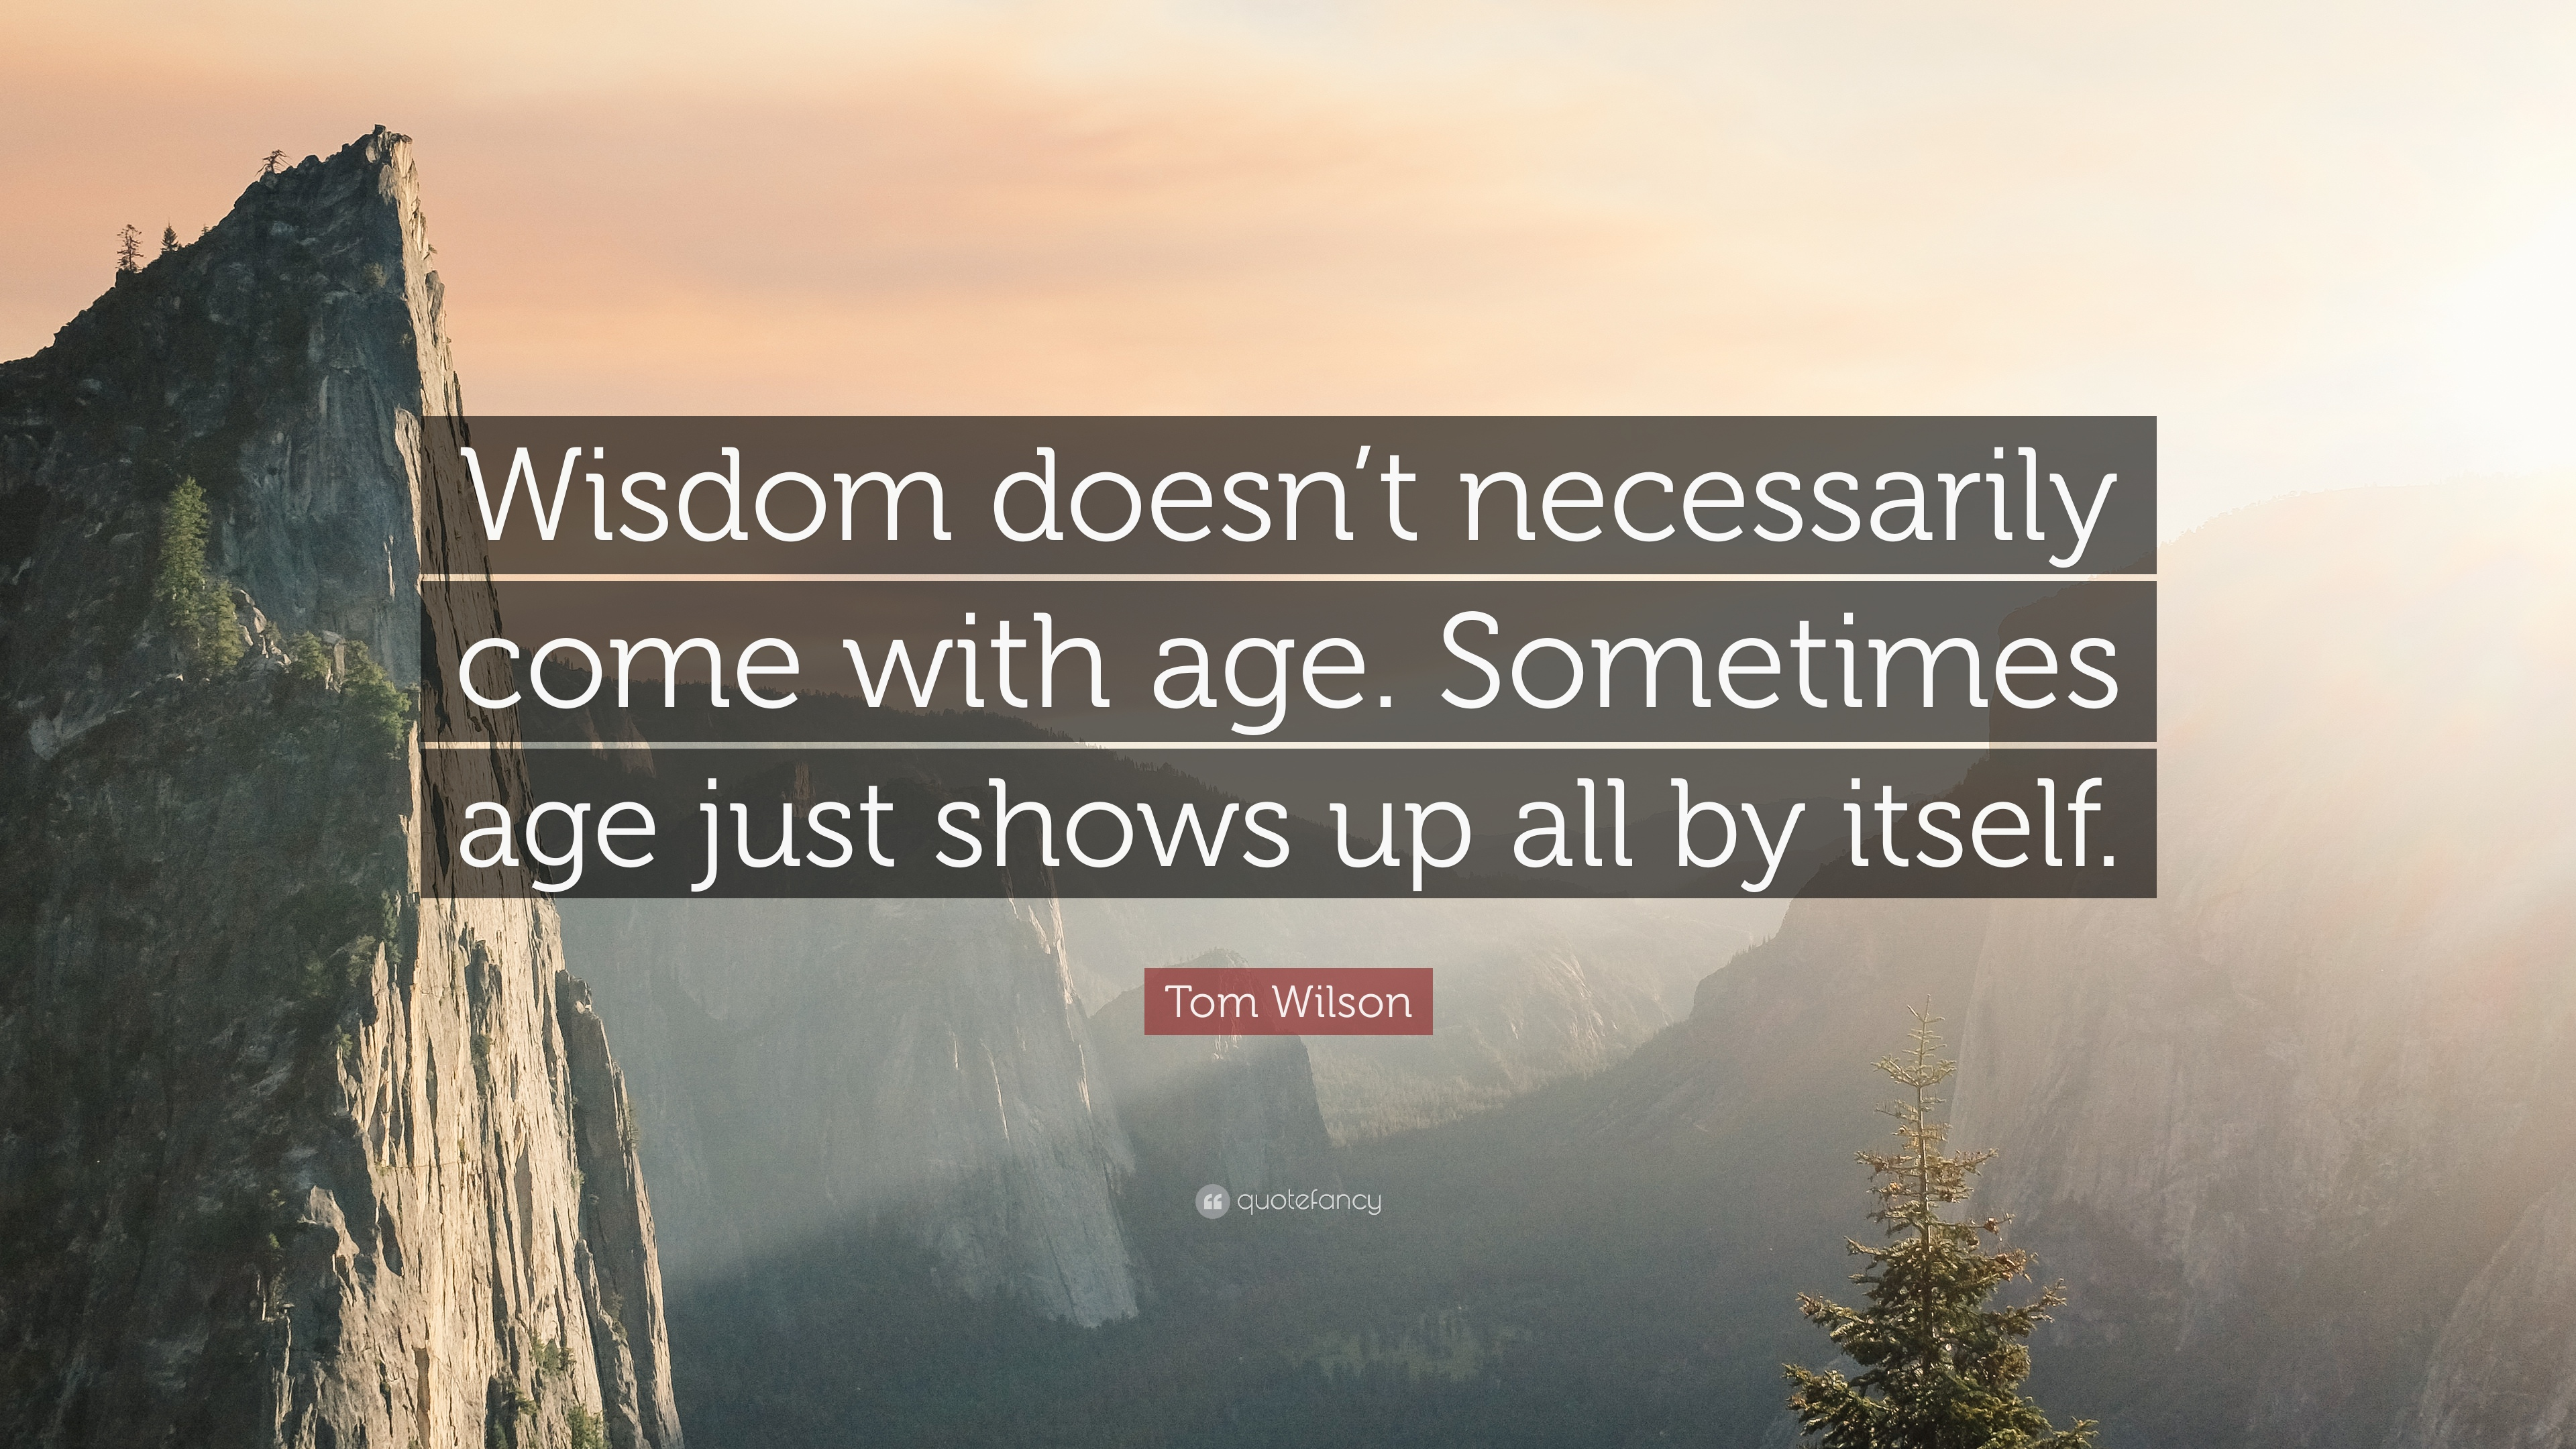 essay on wisdom doesn come with age Wisdom does not come with age essay while the free essays can give you inspiration for writing, they cannot be used 'as is' because they will not meet your.